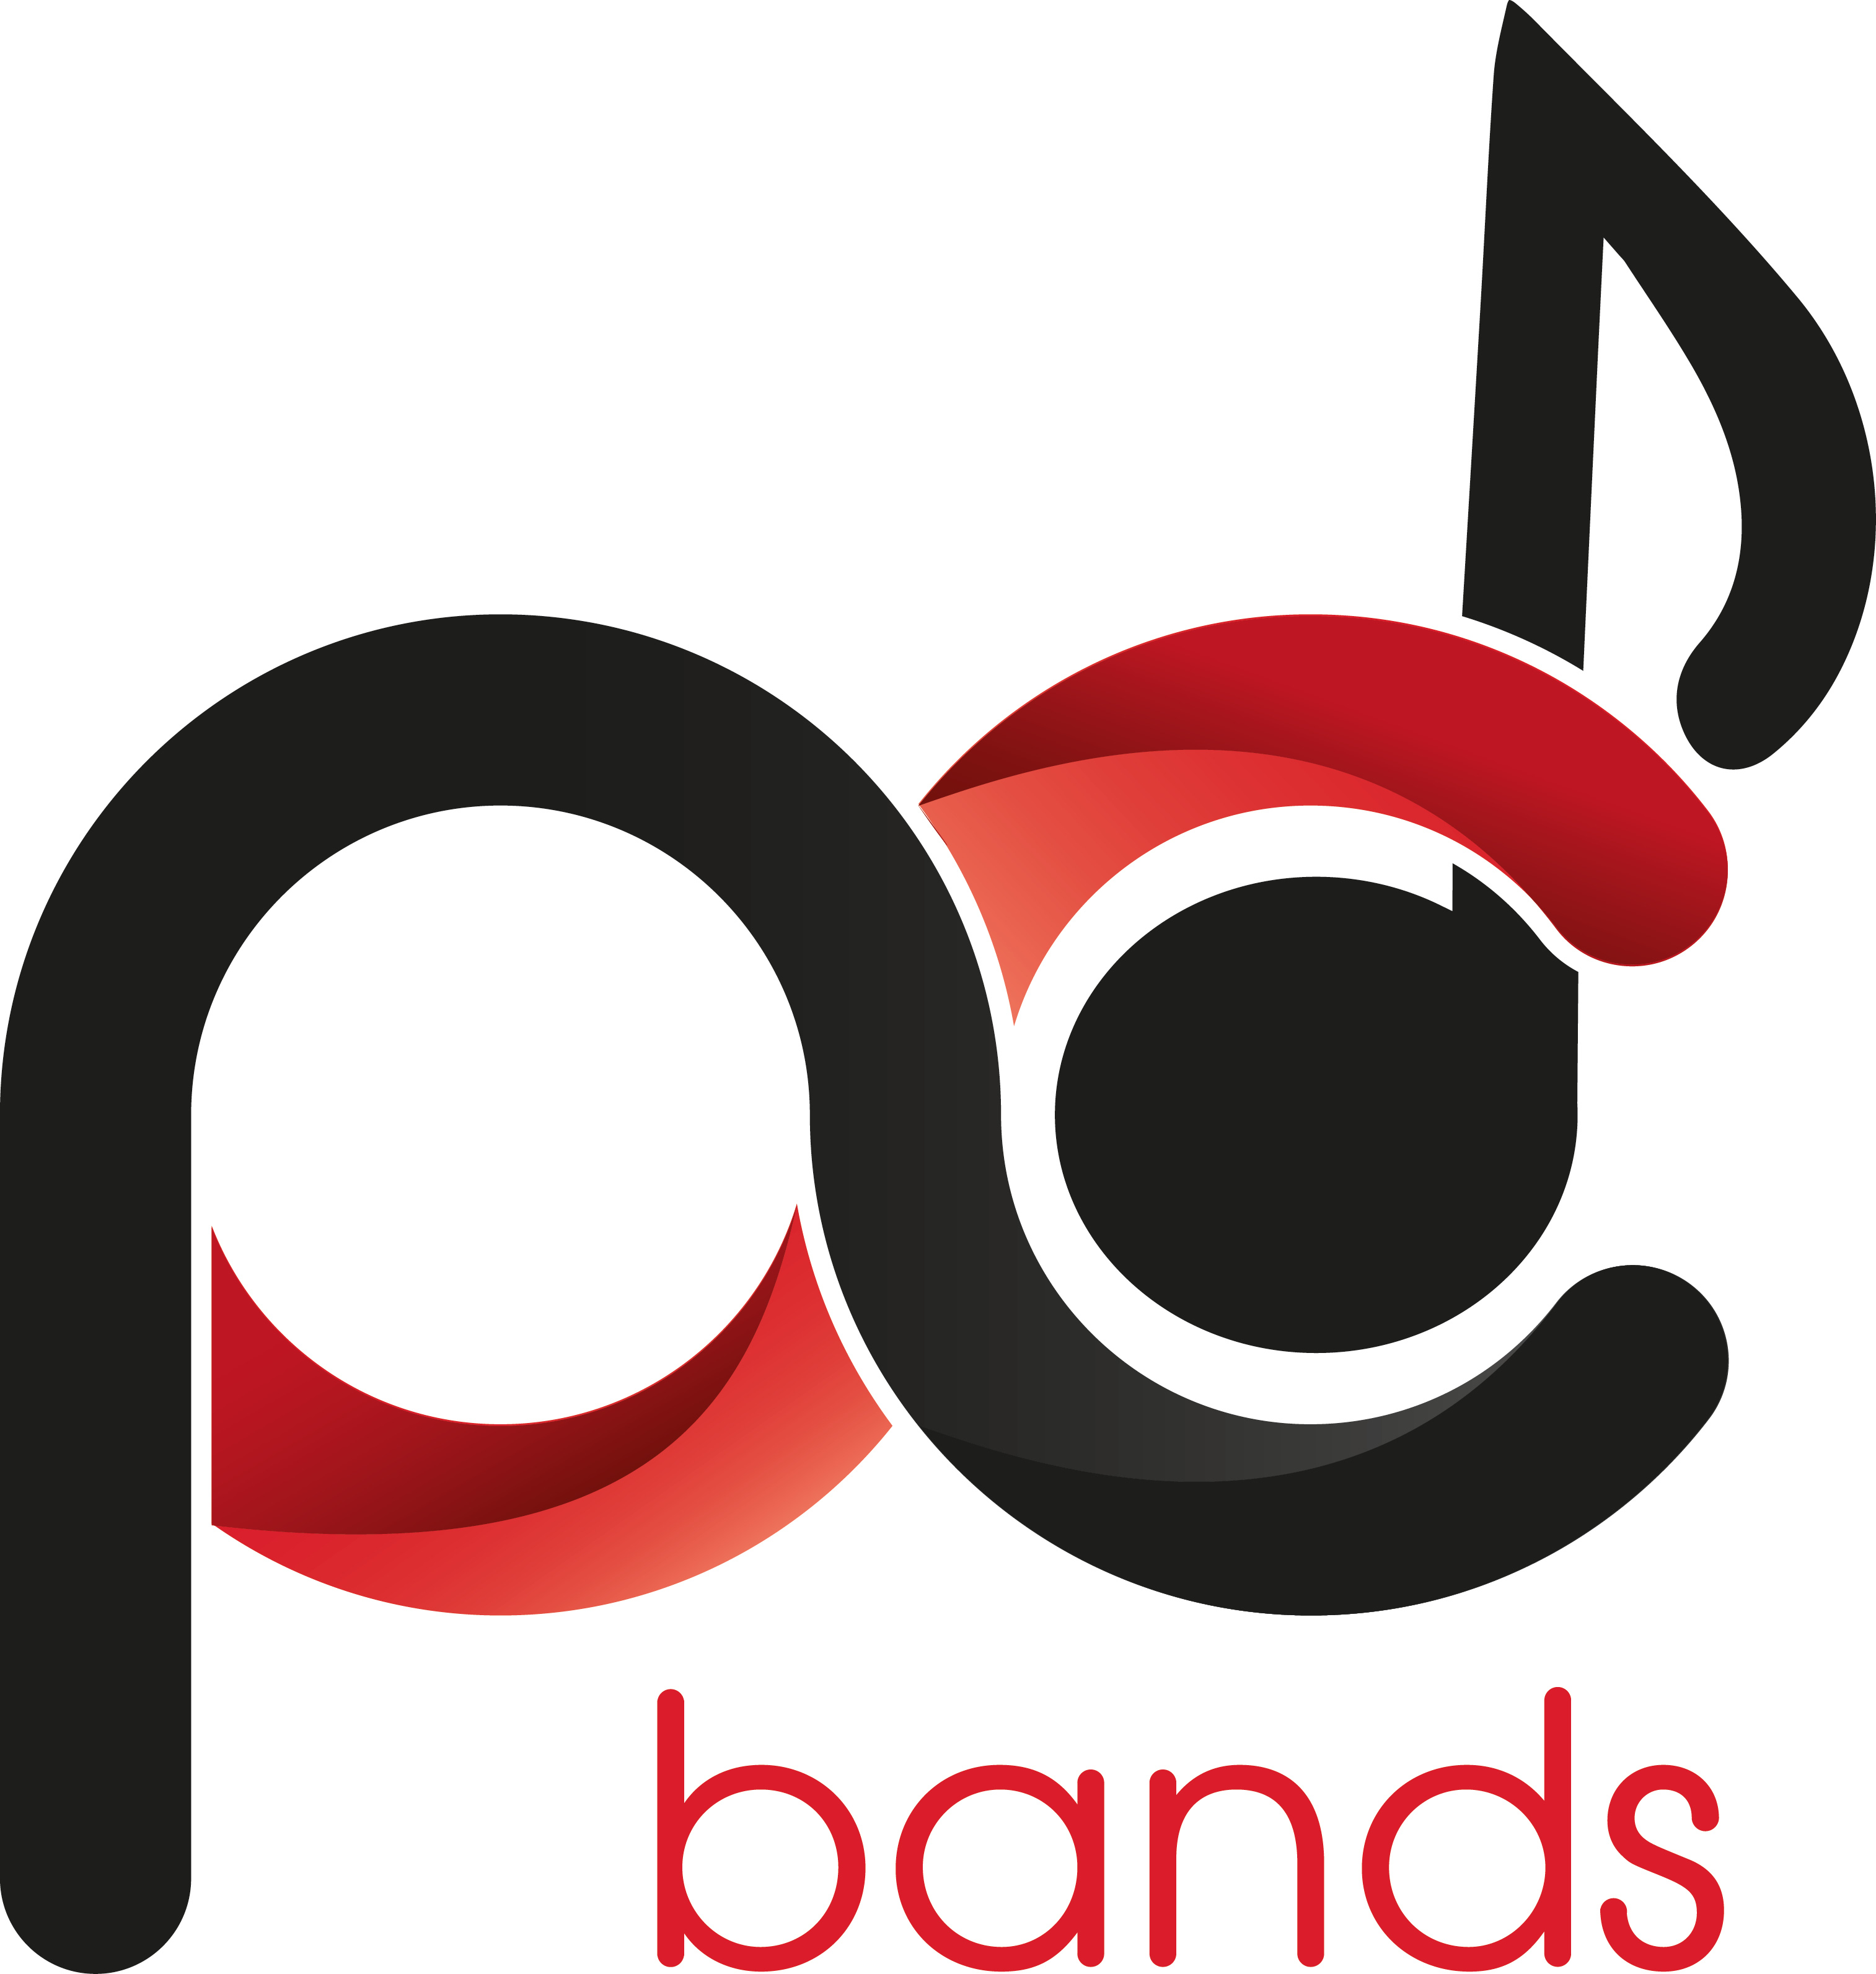 7 Park City High School Students Named to All-State Band